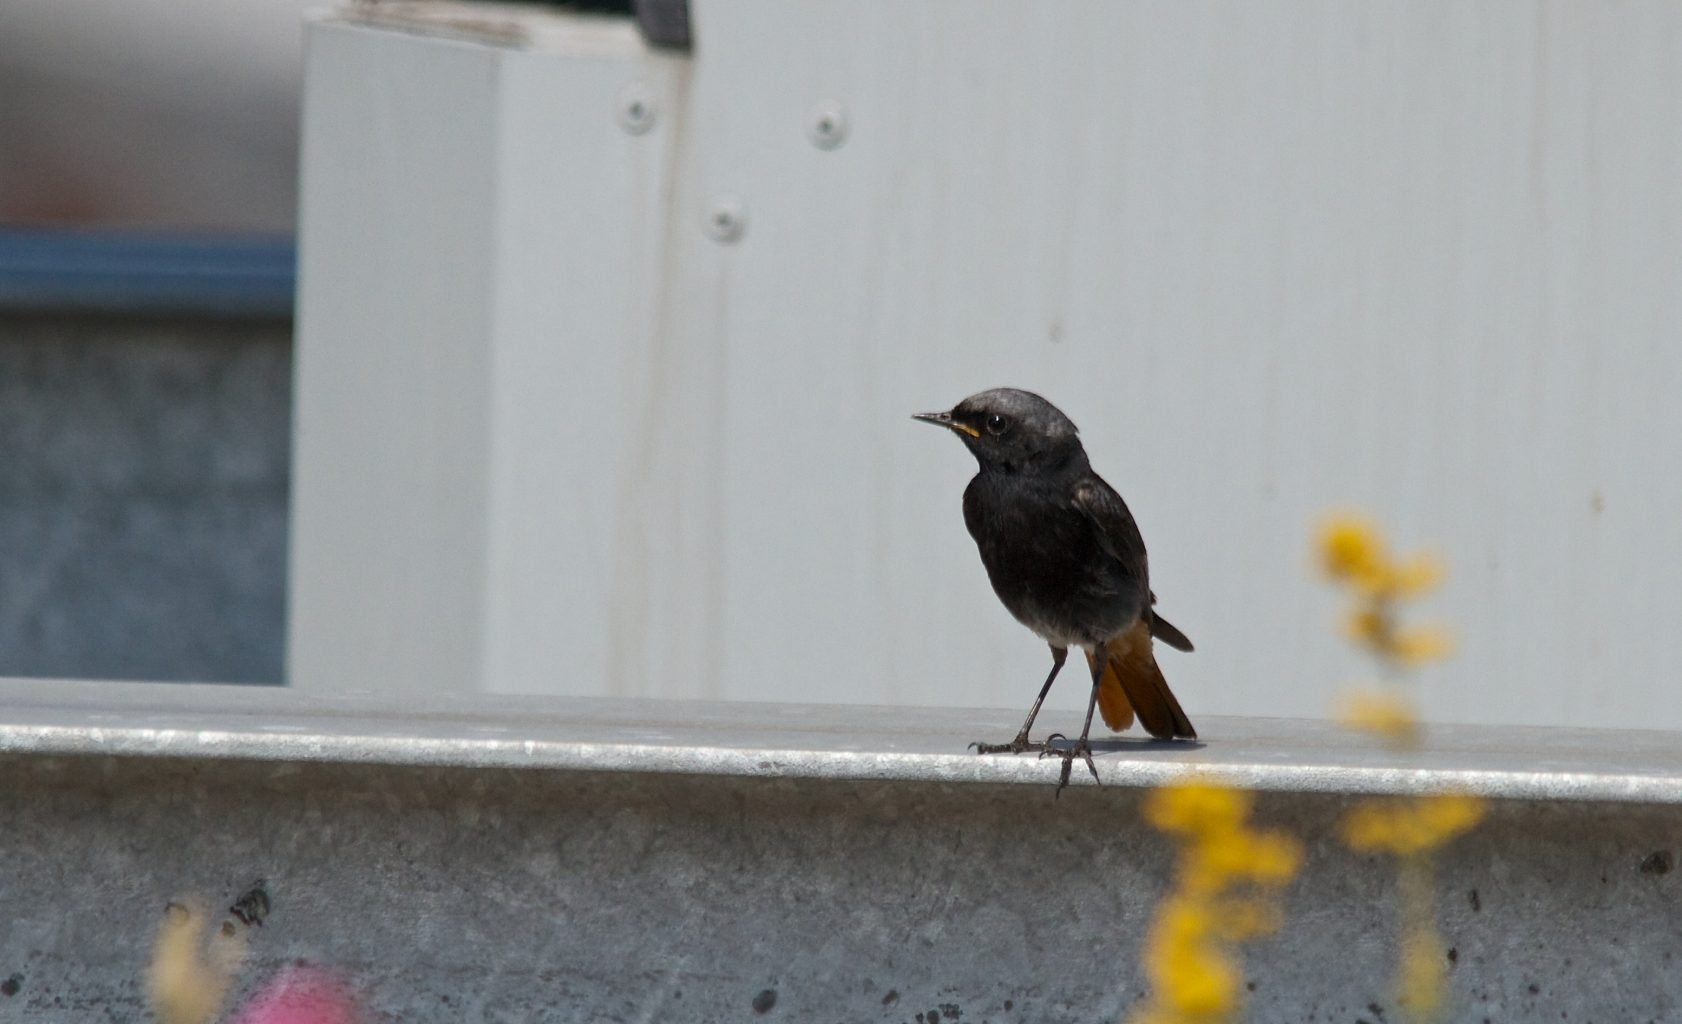 Black Redstart PWC Building London